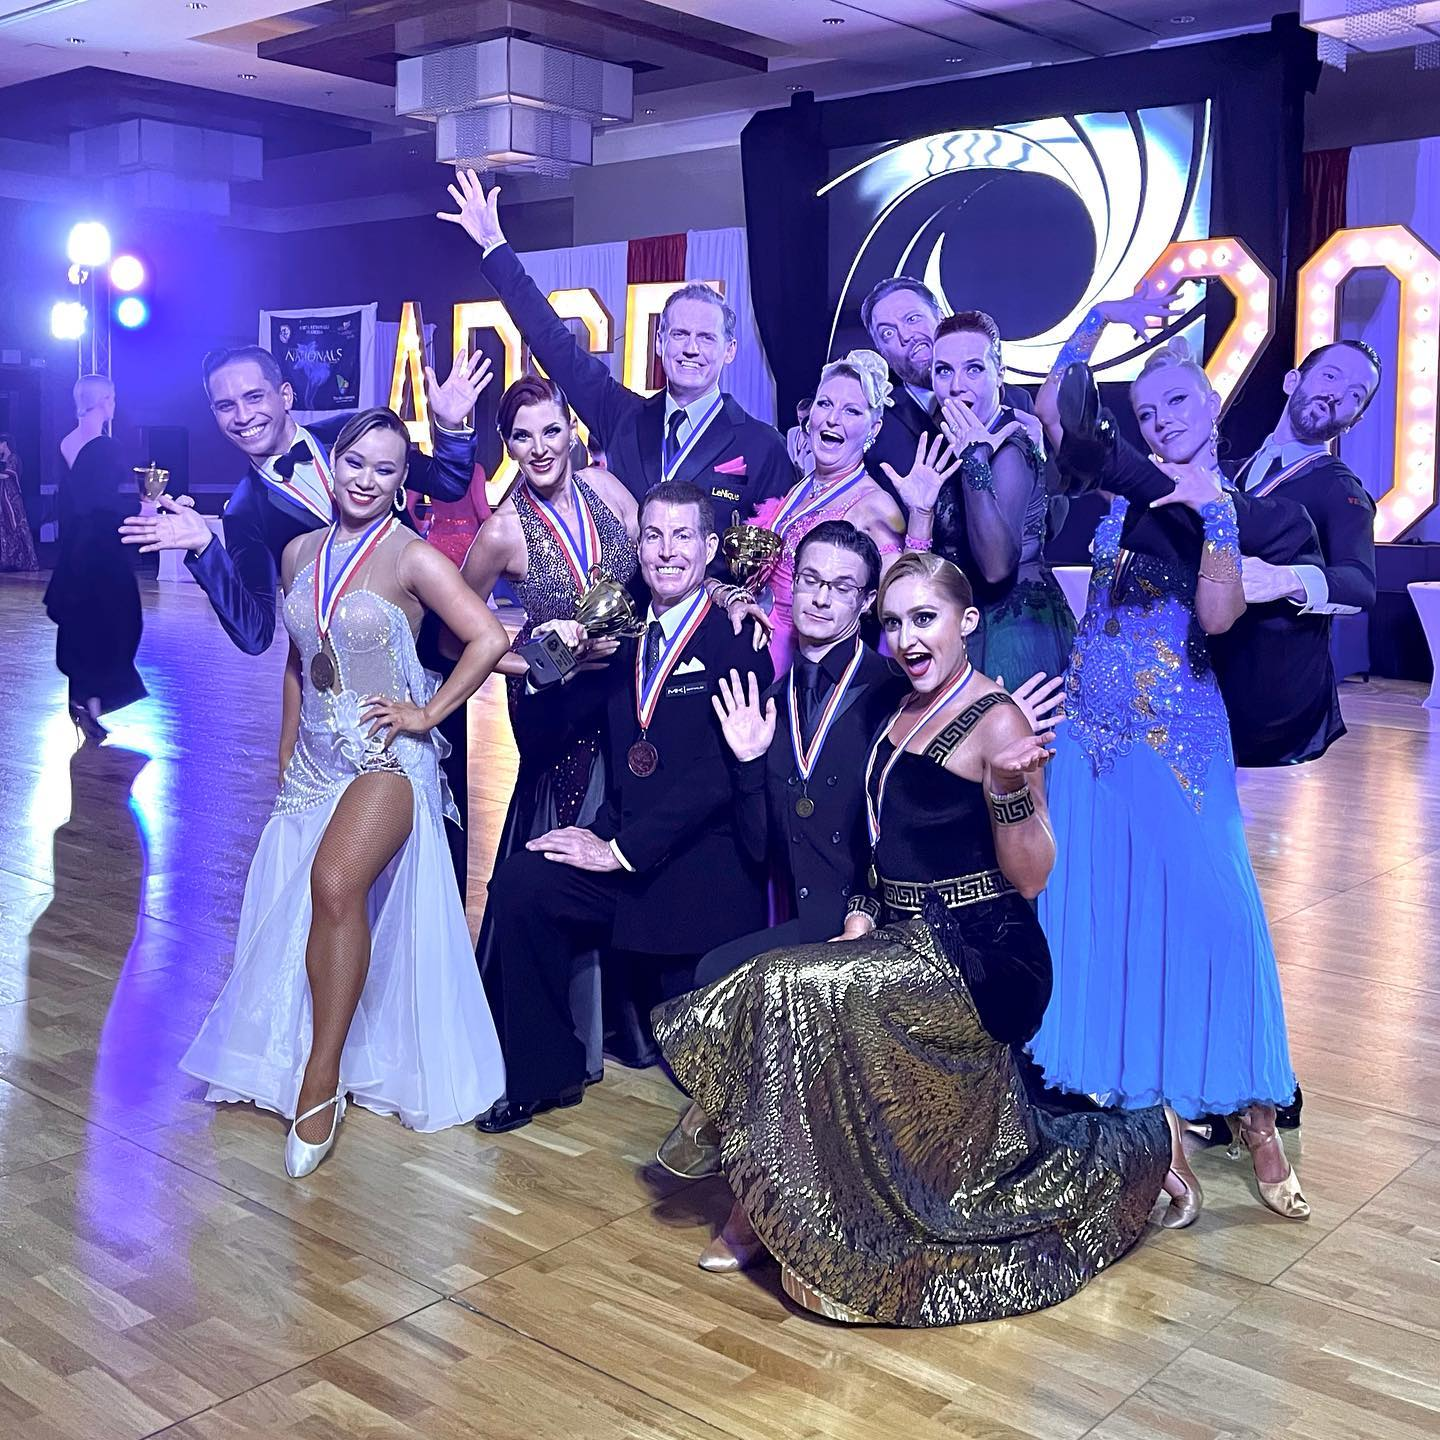 Amateur Nationals Adult Championship Smooth Finalists